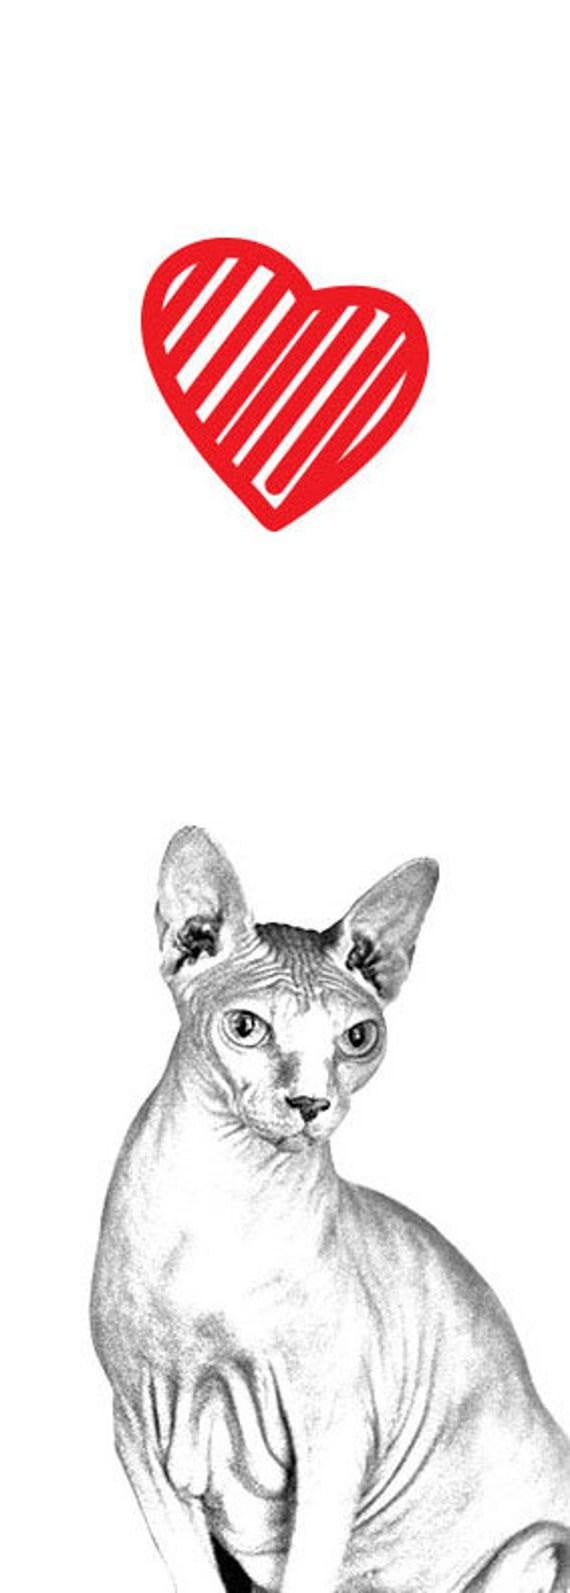 Sphynx cat - Metal bottle opener with a magnet for the fridge with the image of a cat. Collection